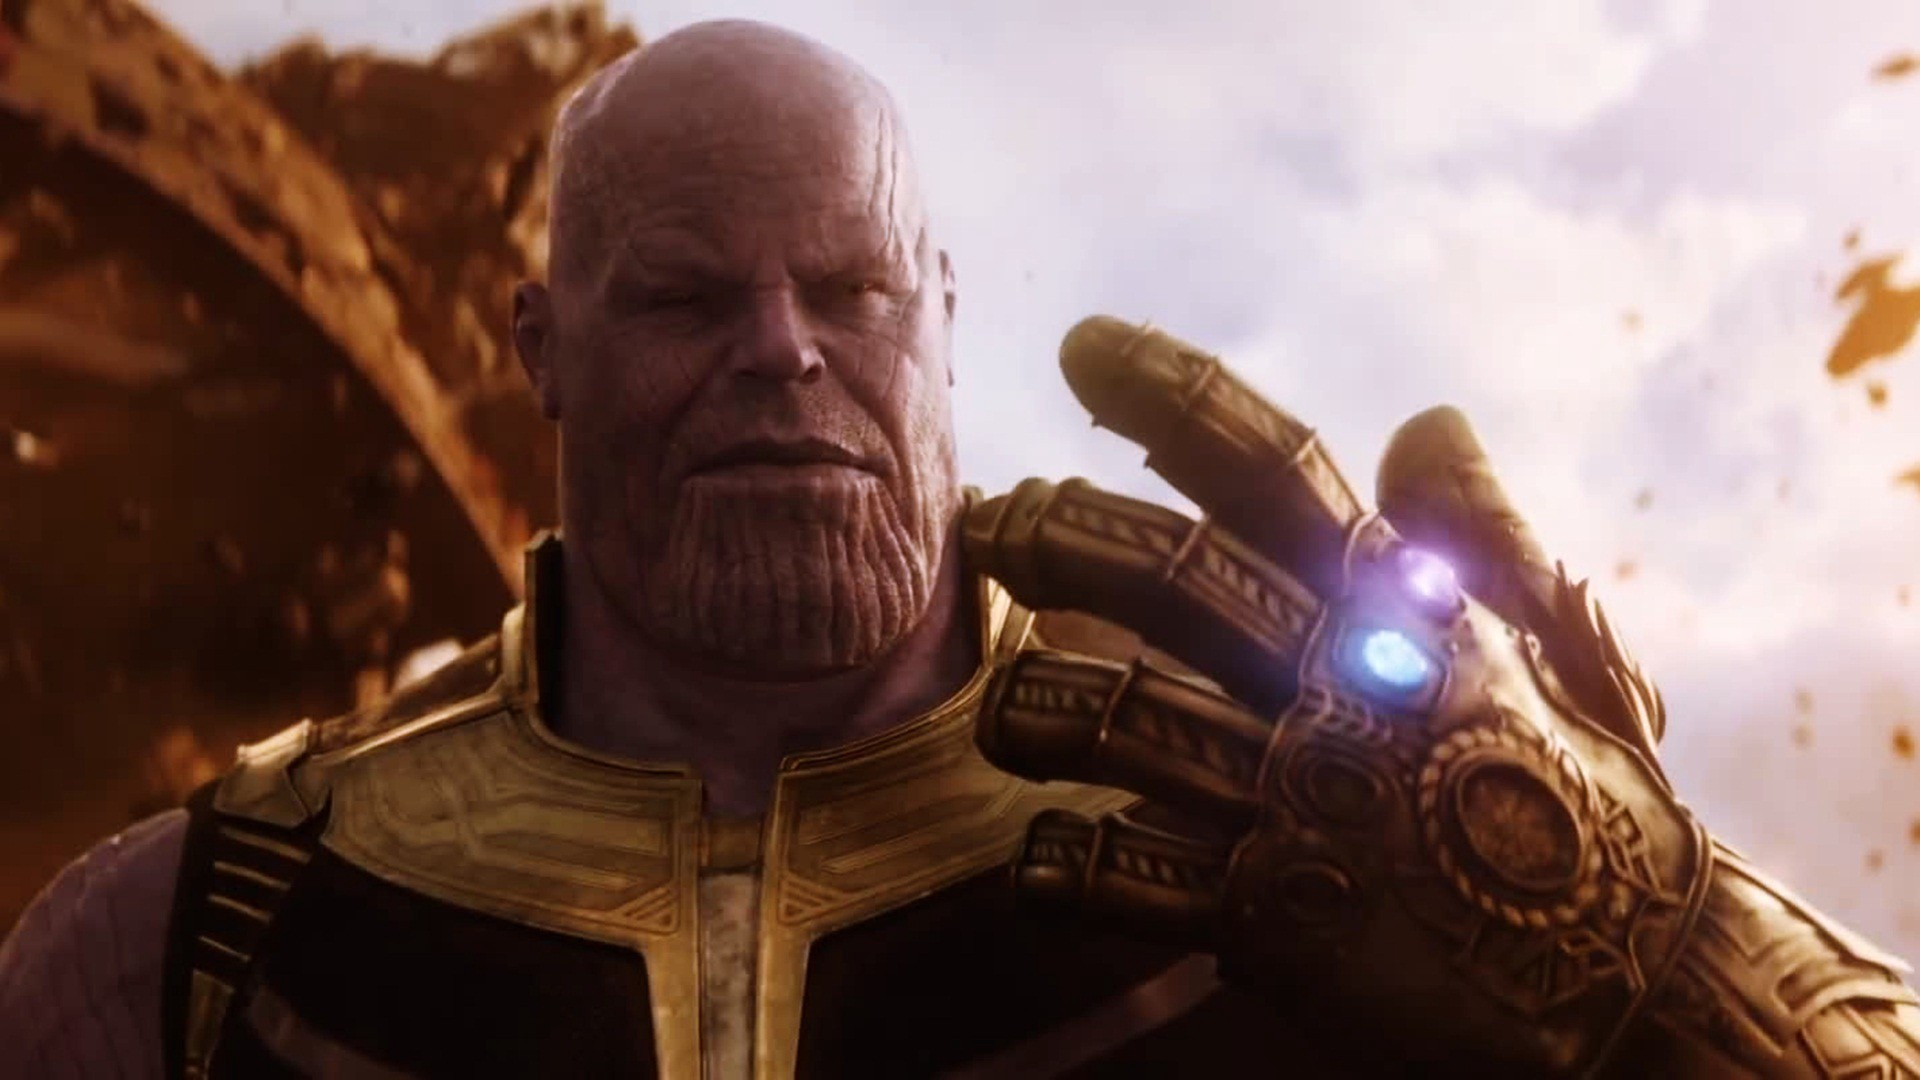 Download Latest Thanos Avengers Infinity War Wallpaper